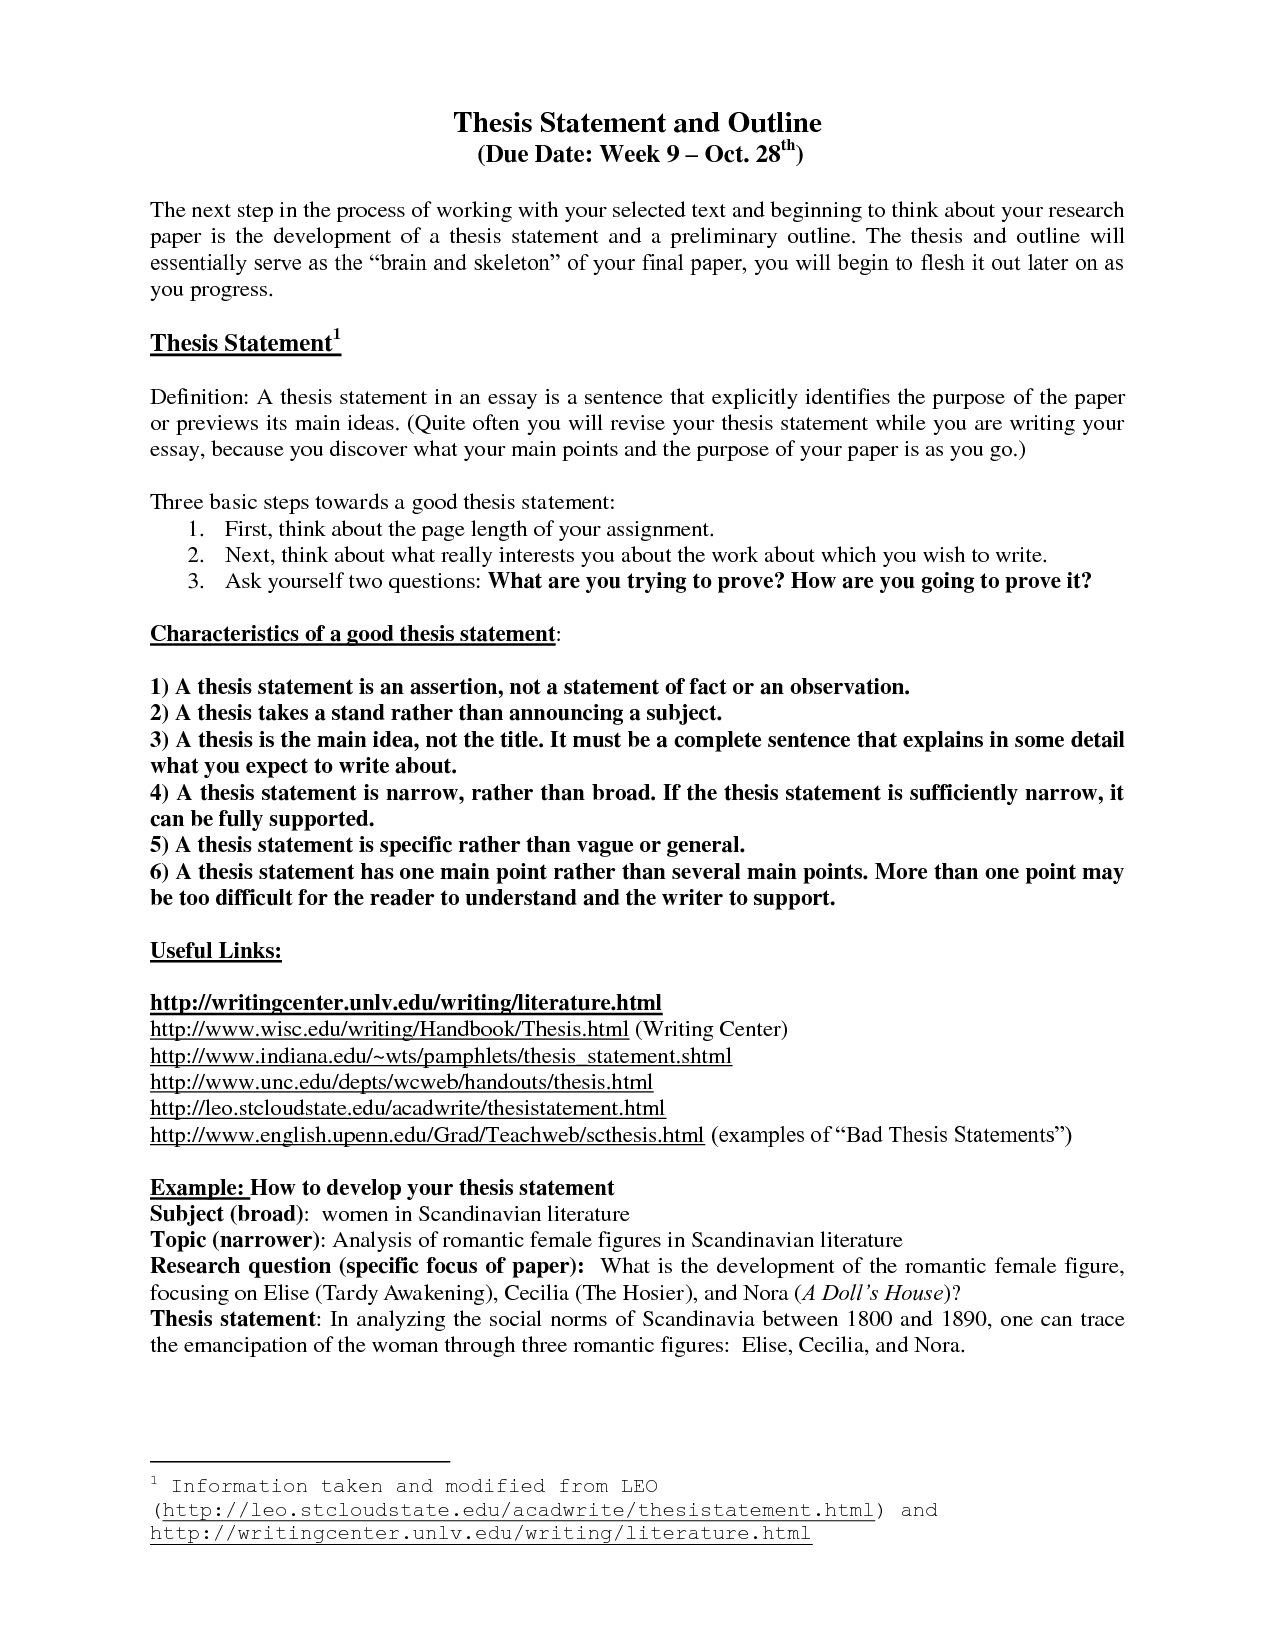 008 Research Paper Thesis Statementnd Outline Template Wx8nmdez What Is The Purpose Of Impressive A Conducting Critiquing Process Writing Full